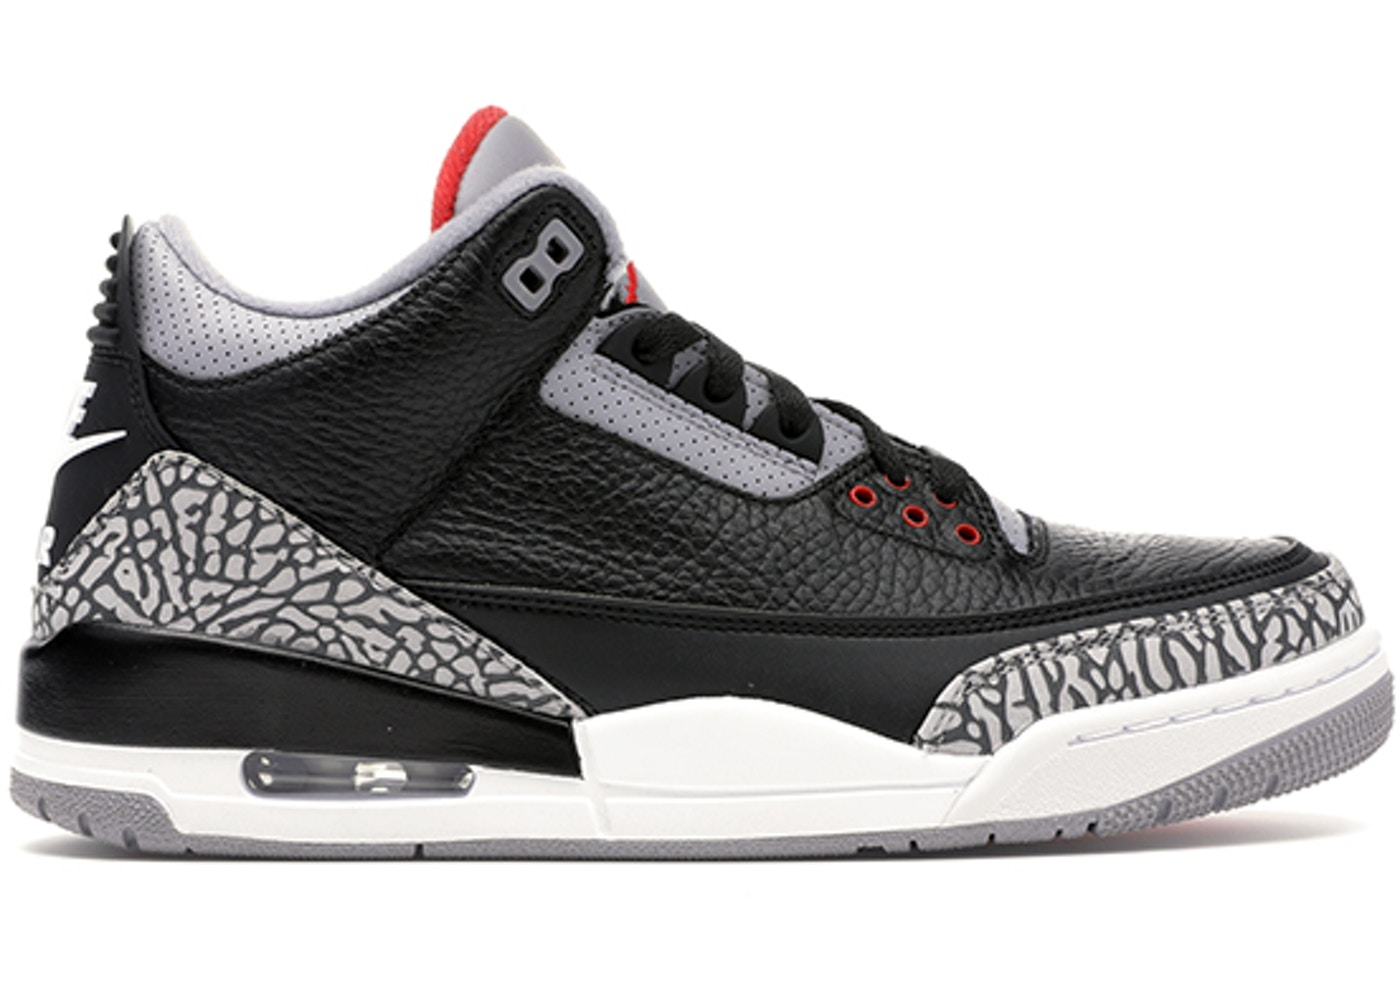 9900f26523914 Jordan 3 Retro Black Cement (2018) - 854262-001